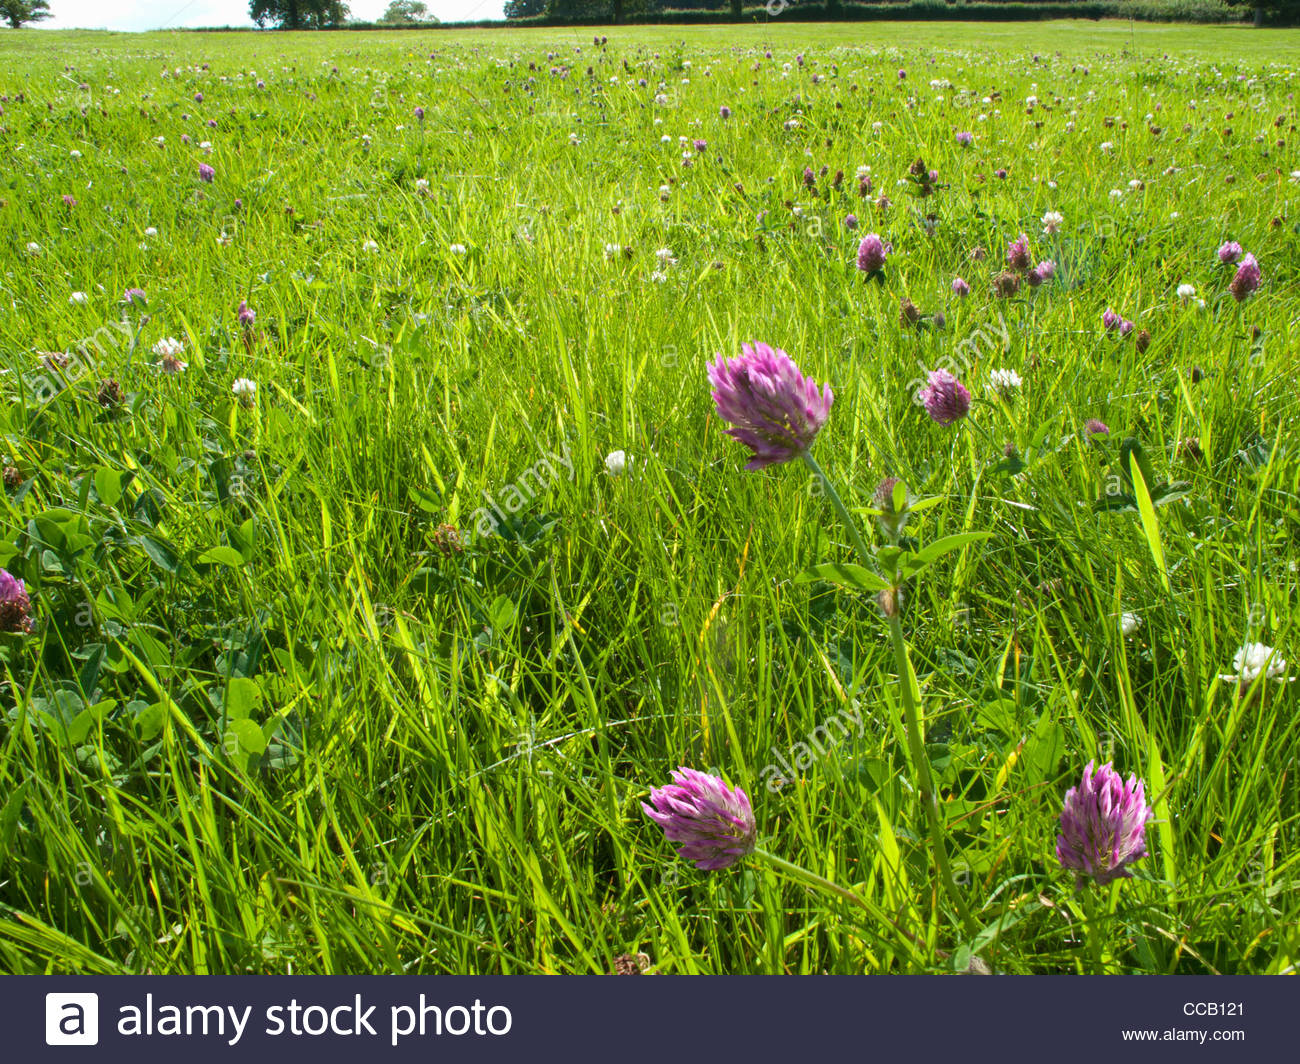 Purple clover blooming in grassy field - Stock Image